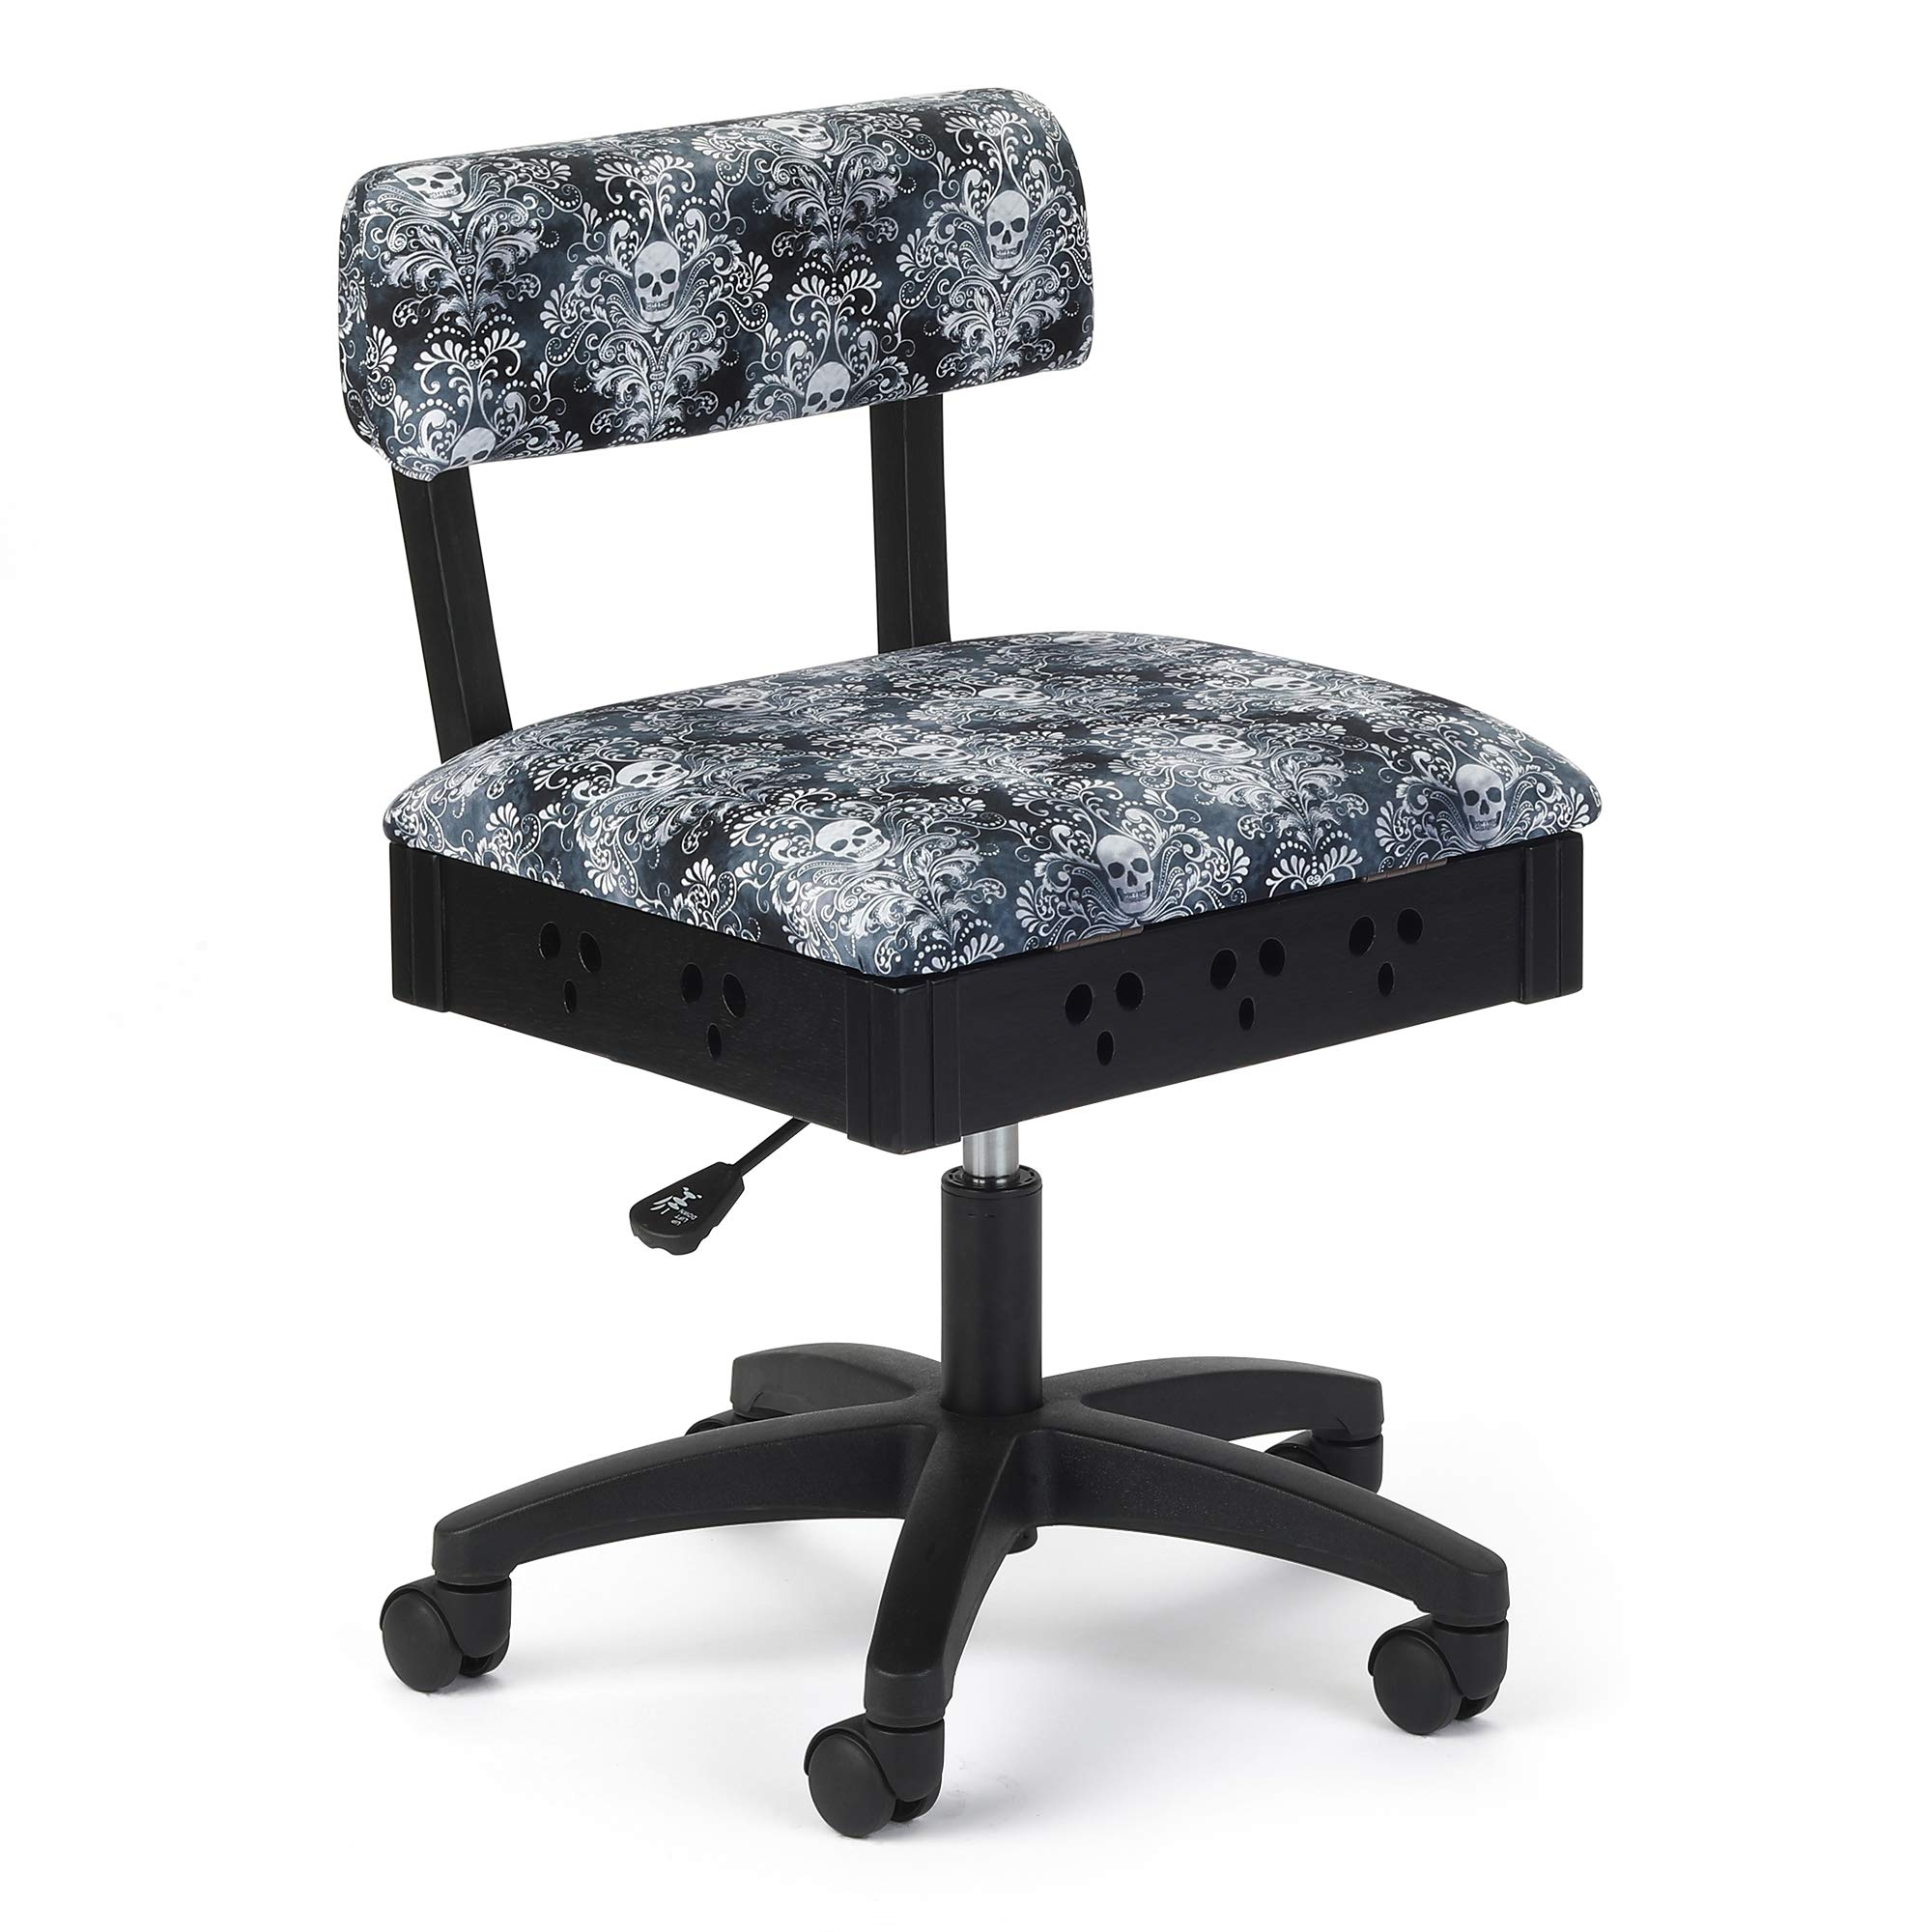 Arrow Adjustable Height Hydraulic Sewing and Craft Chair Wicked Cosplay Upholstery by Arrow Sewing Cabinets